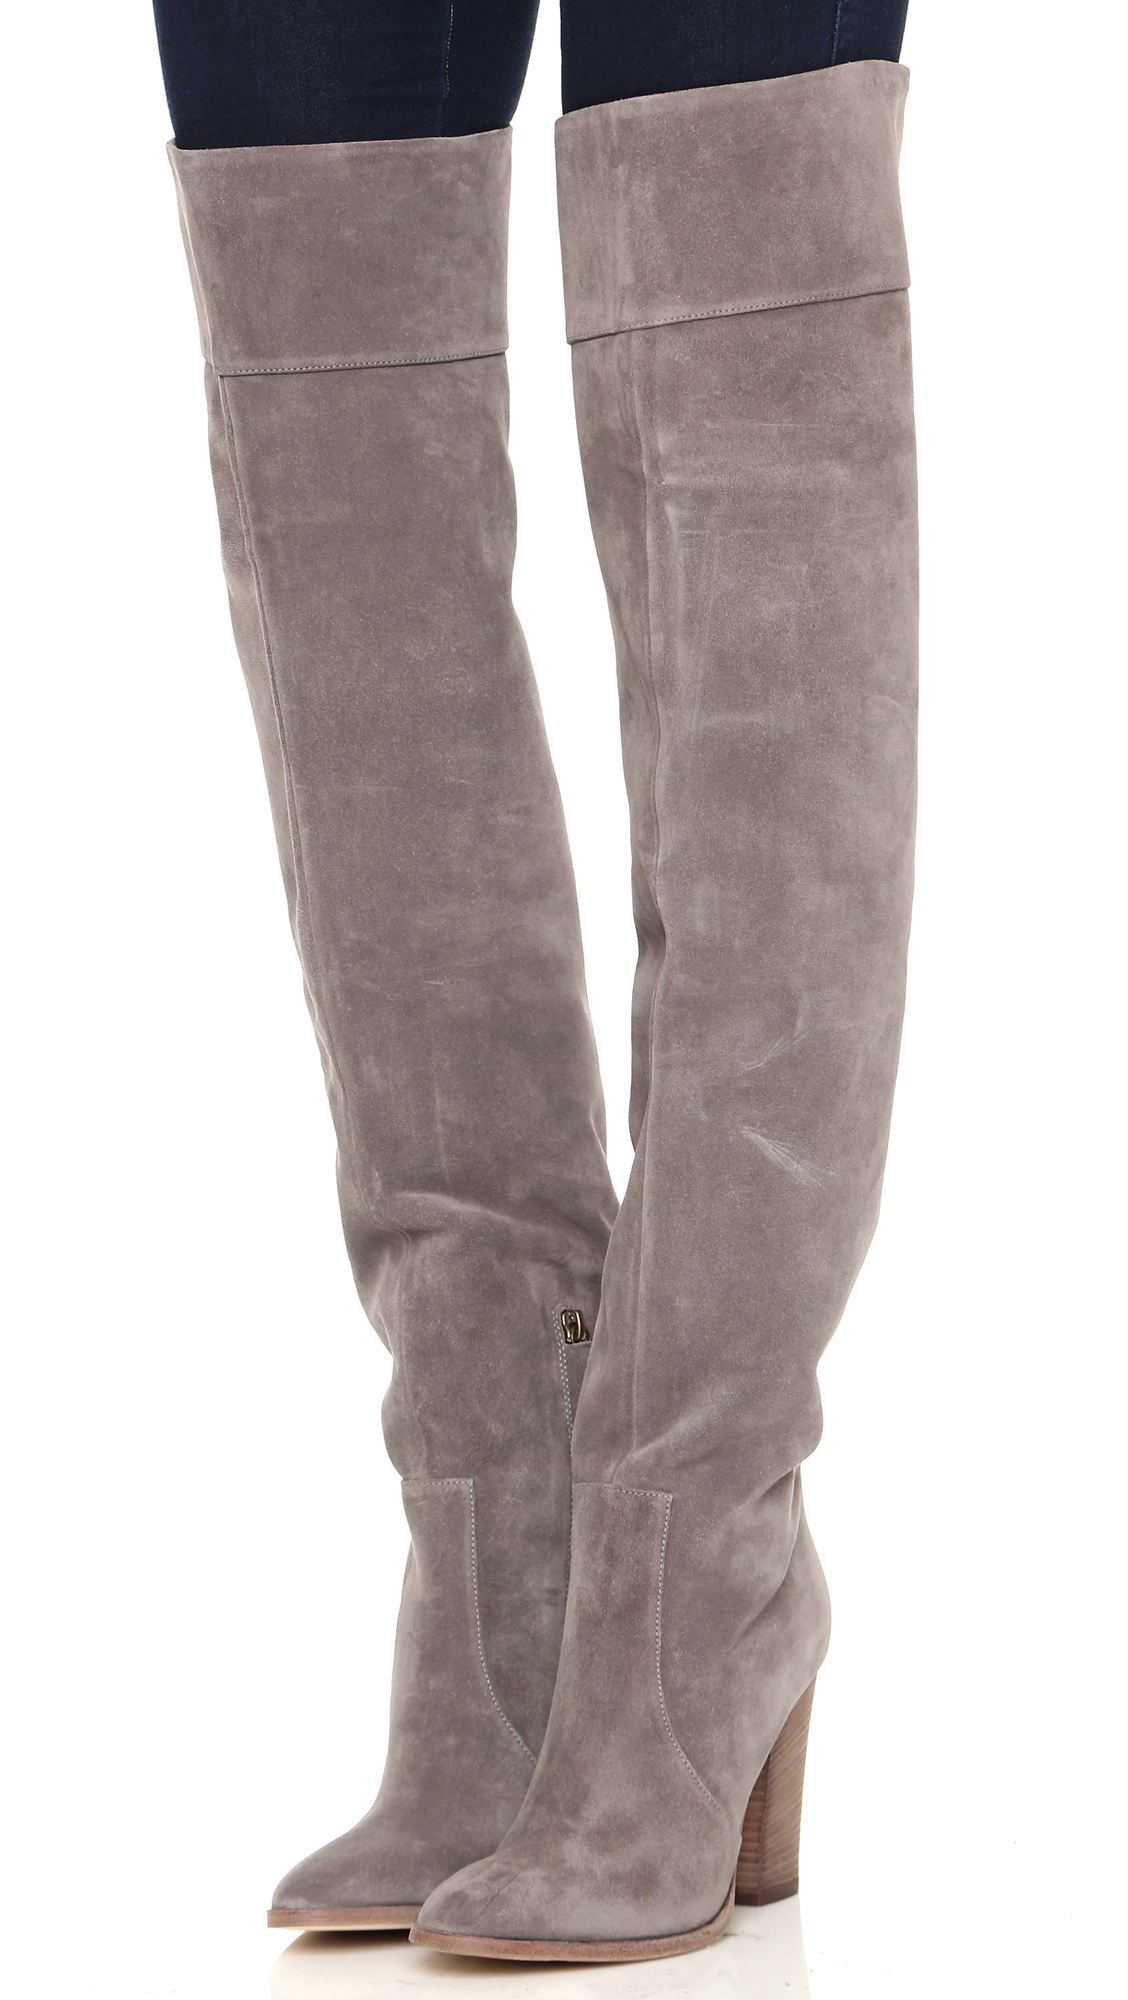 Club Monaco Lisa Over The Knee Suede Boots - Grey in Grey